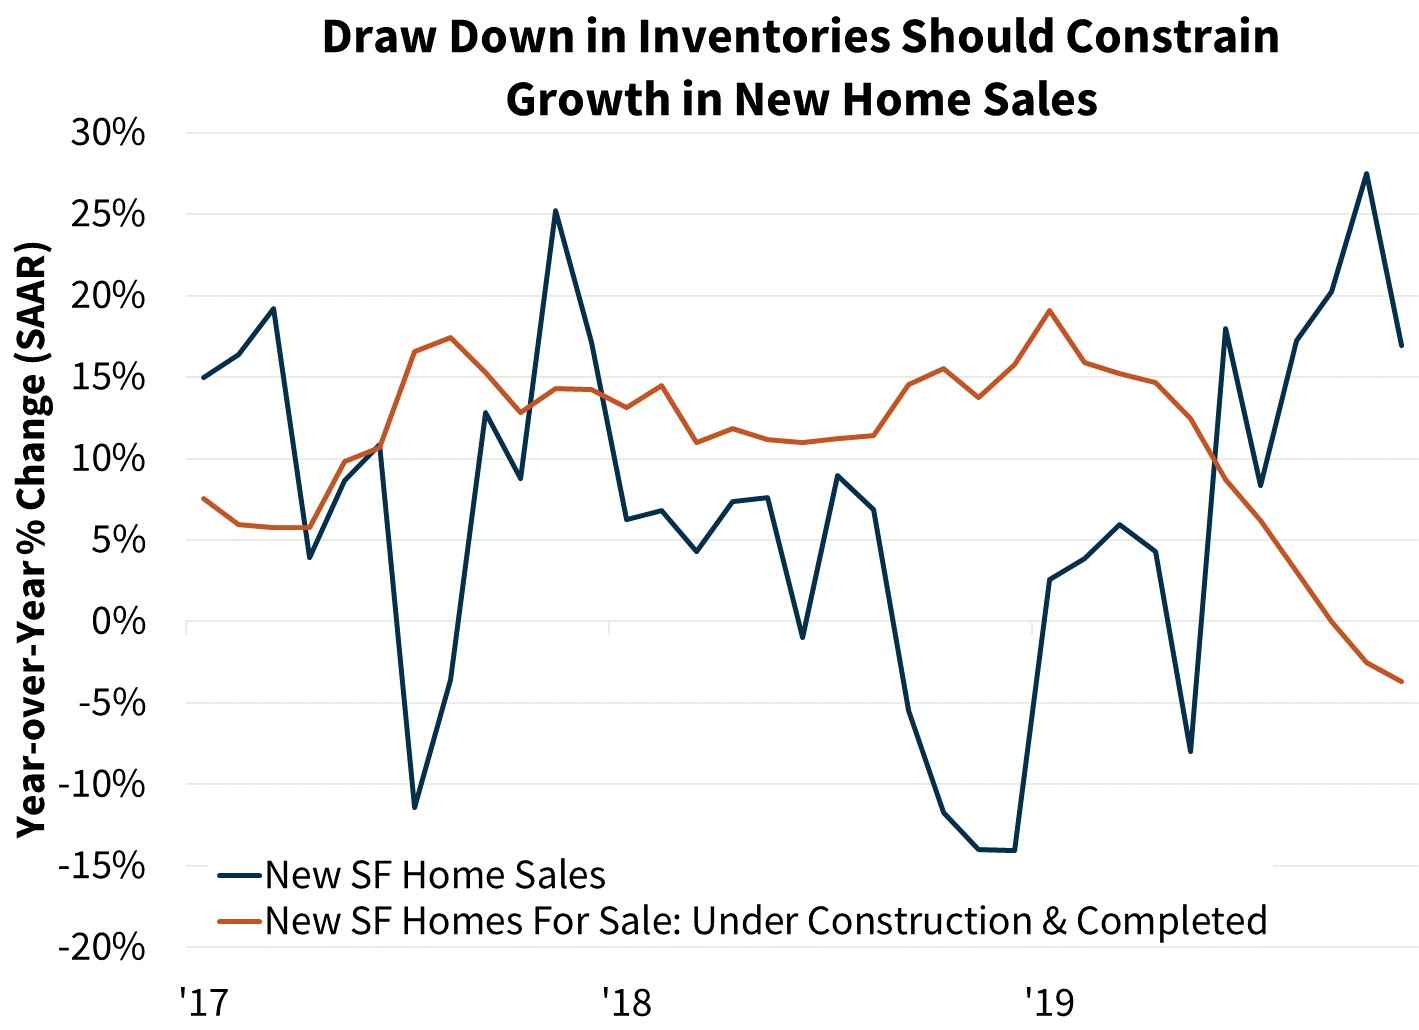 Draw Down in Inventories Should Constrain Growth in New Home Sales